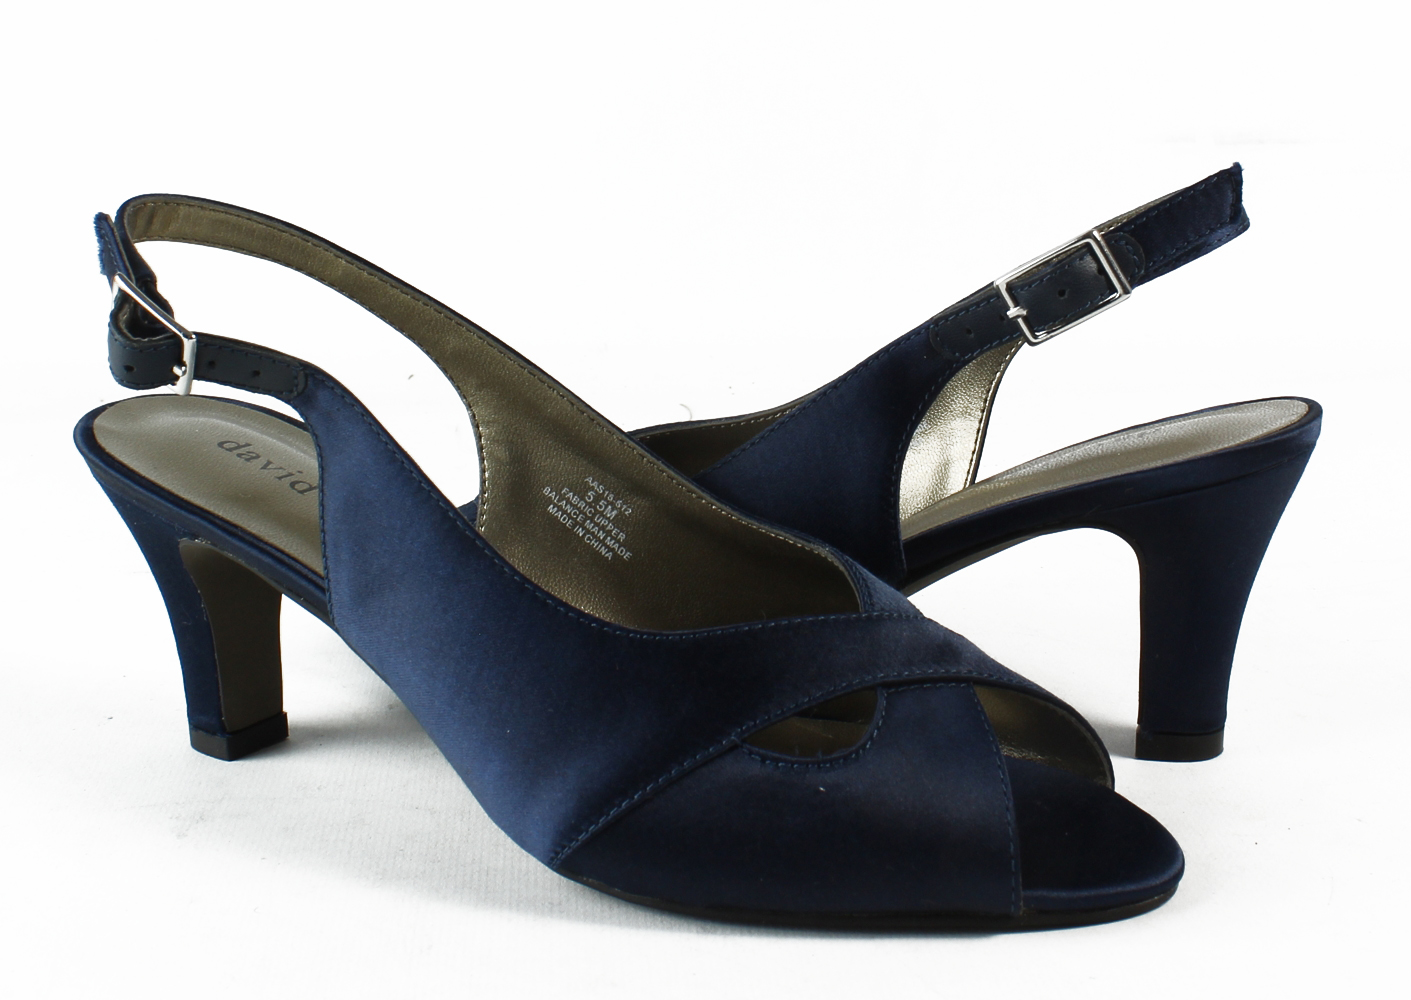 3c5f05196f6 David Tate - New David Tate Womens Palm-410 Navy Peep Toe Heels Size 5 -  Walmart.com